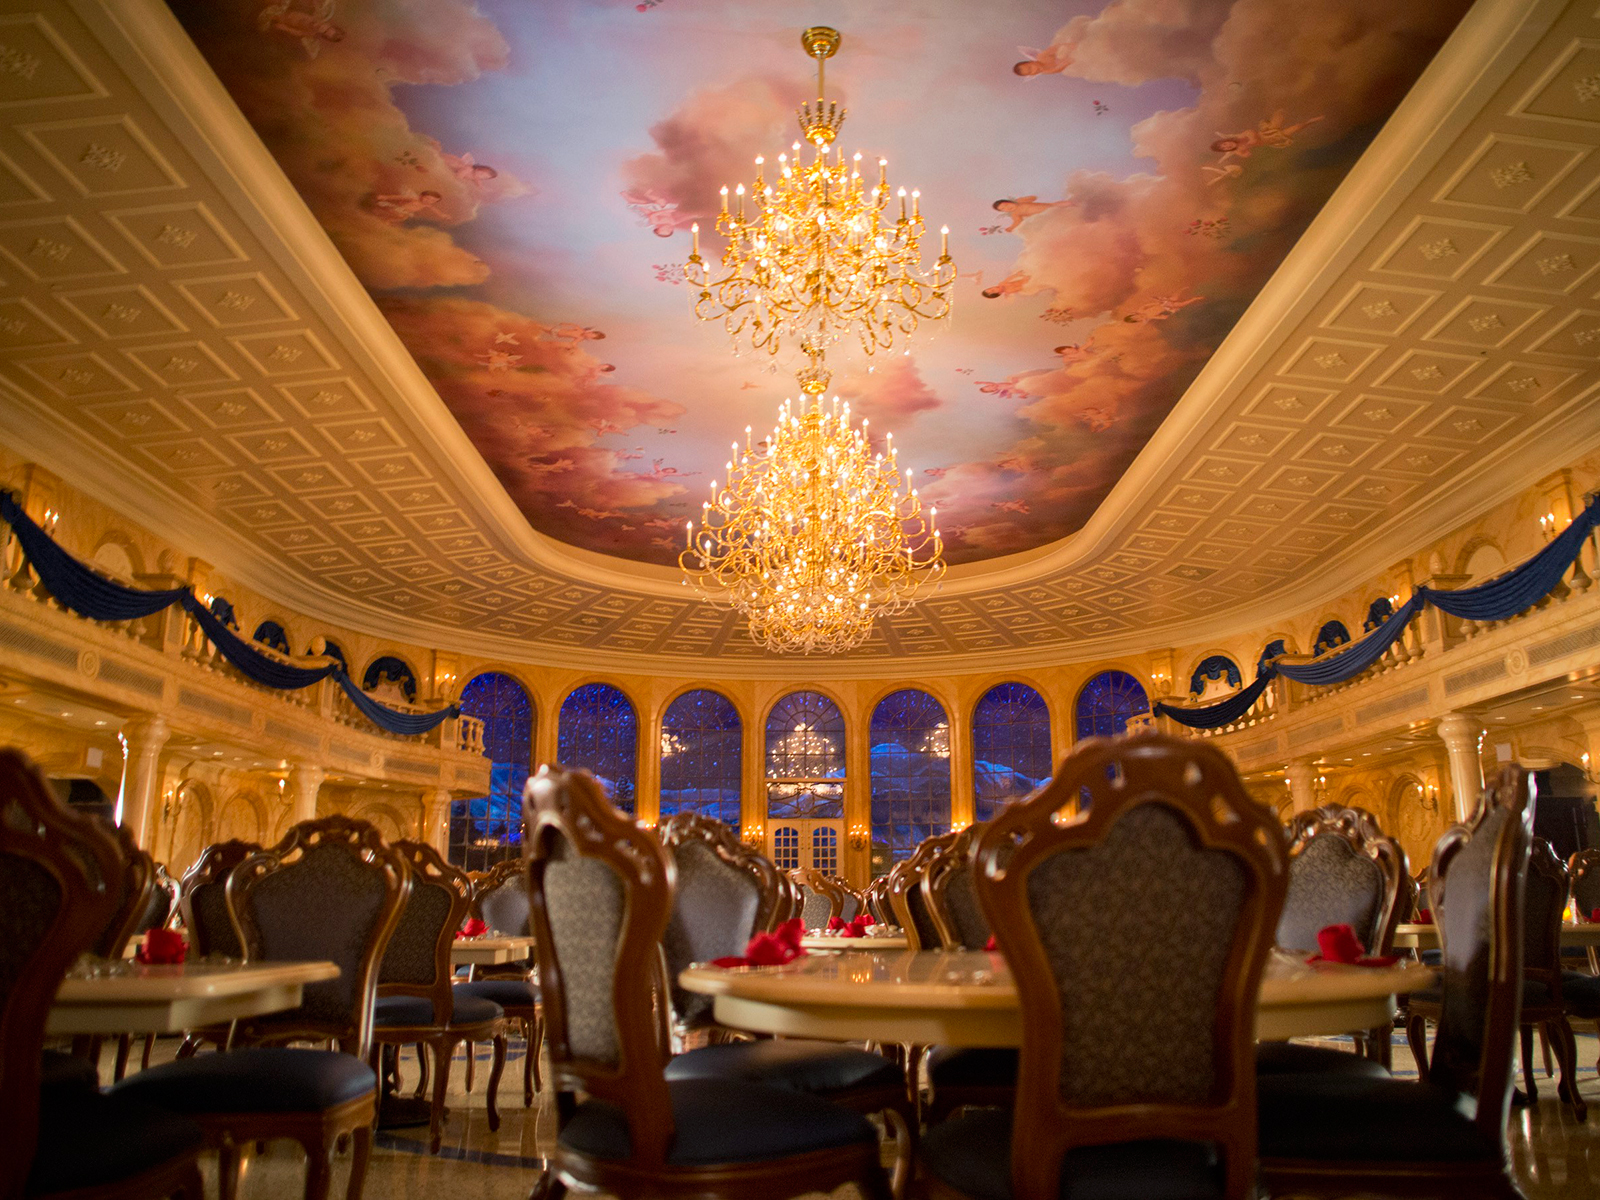 Disney World's 'Beauty and the Beast'-Themed Restaurant Menu Gets a Makeover This Summer